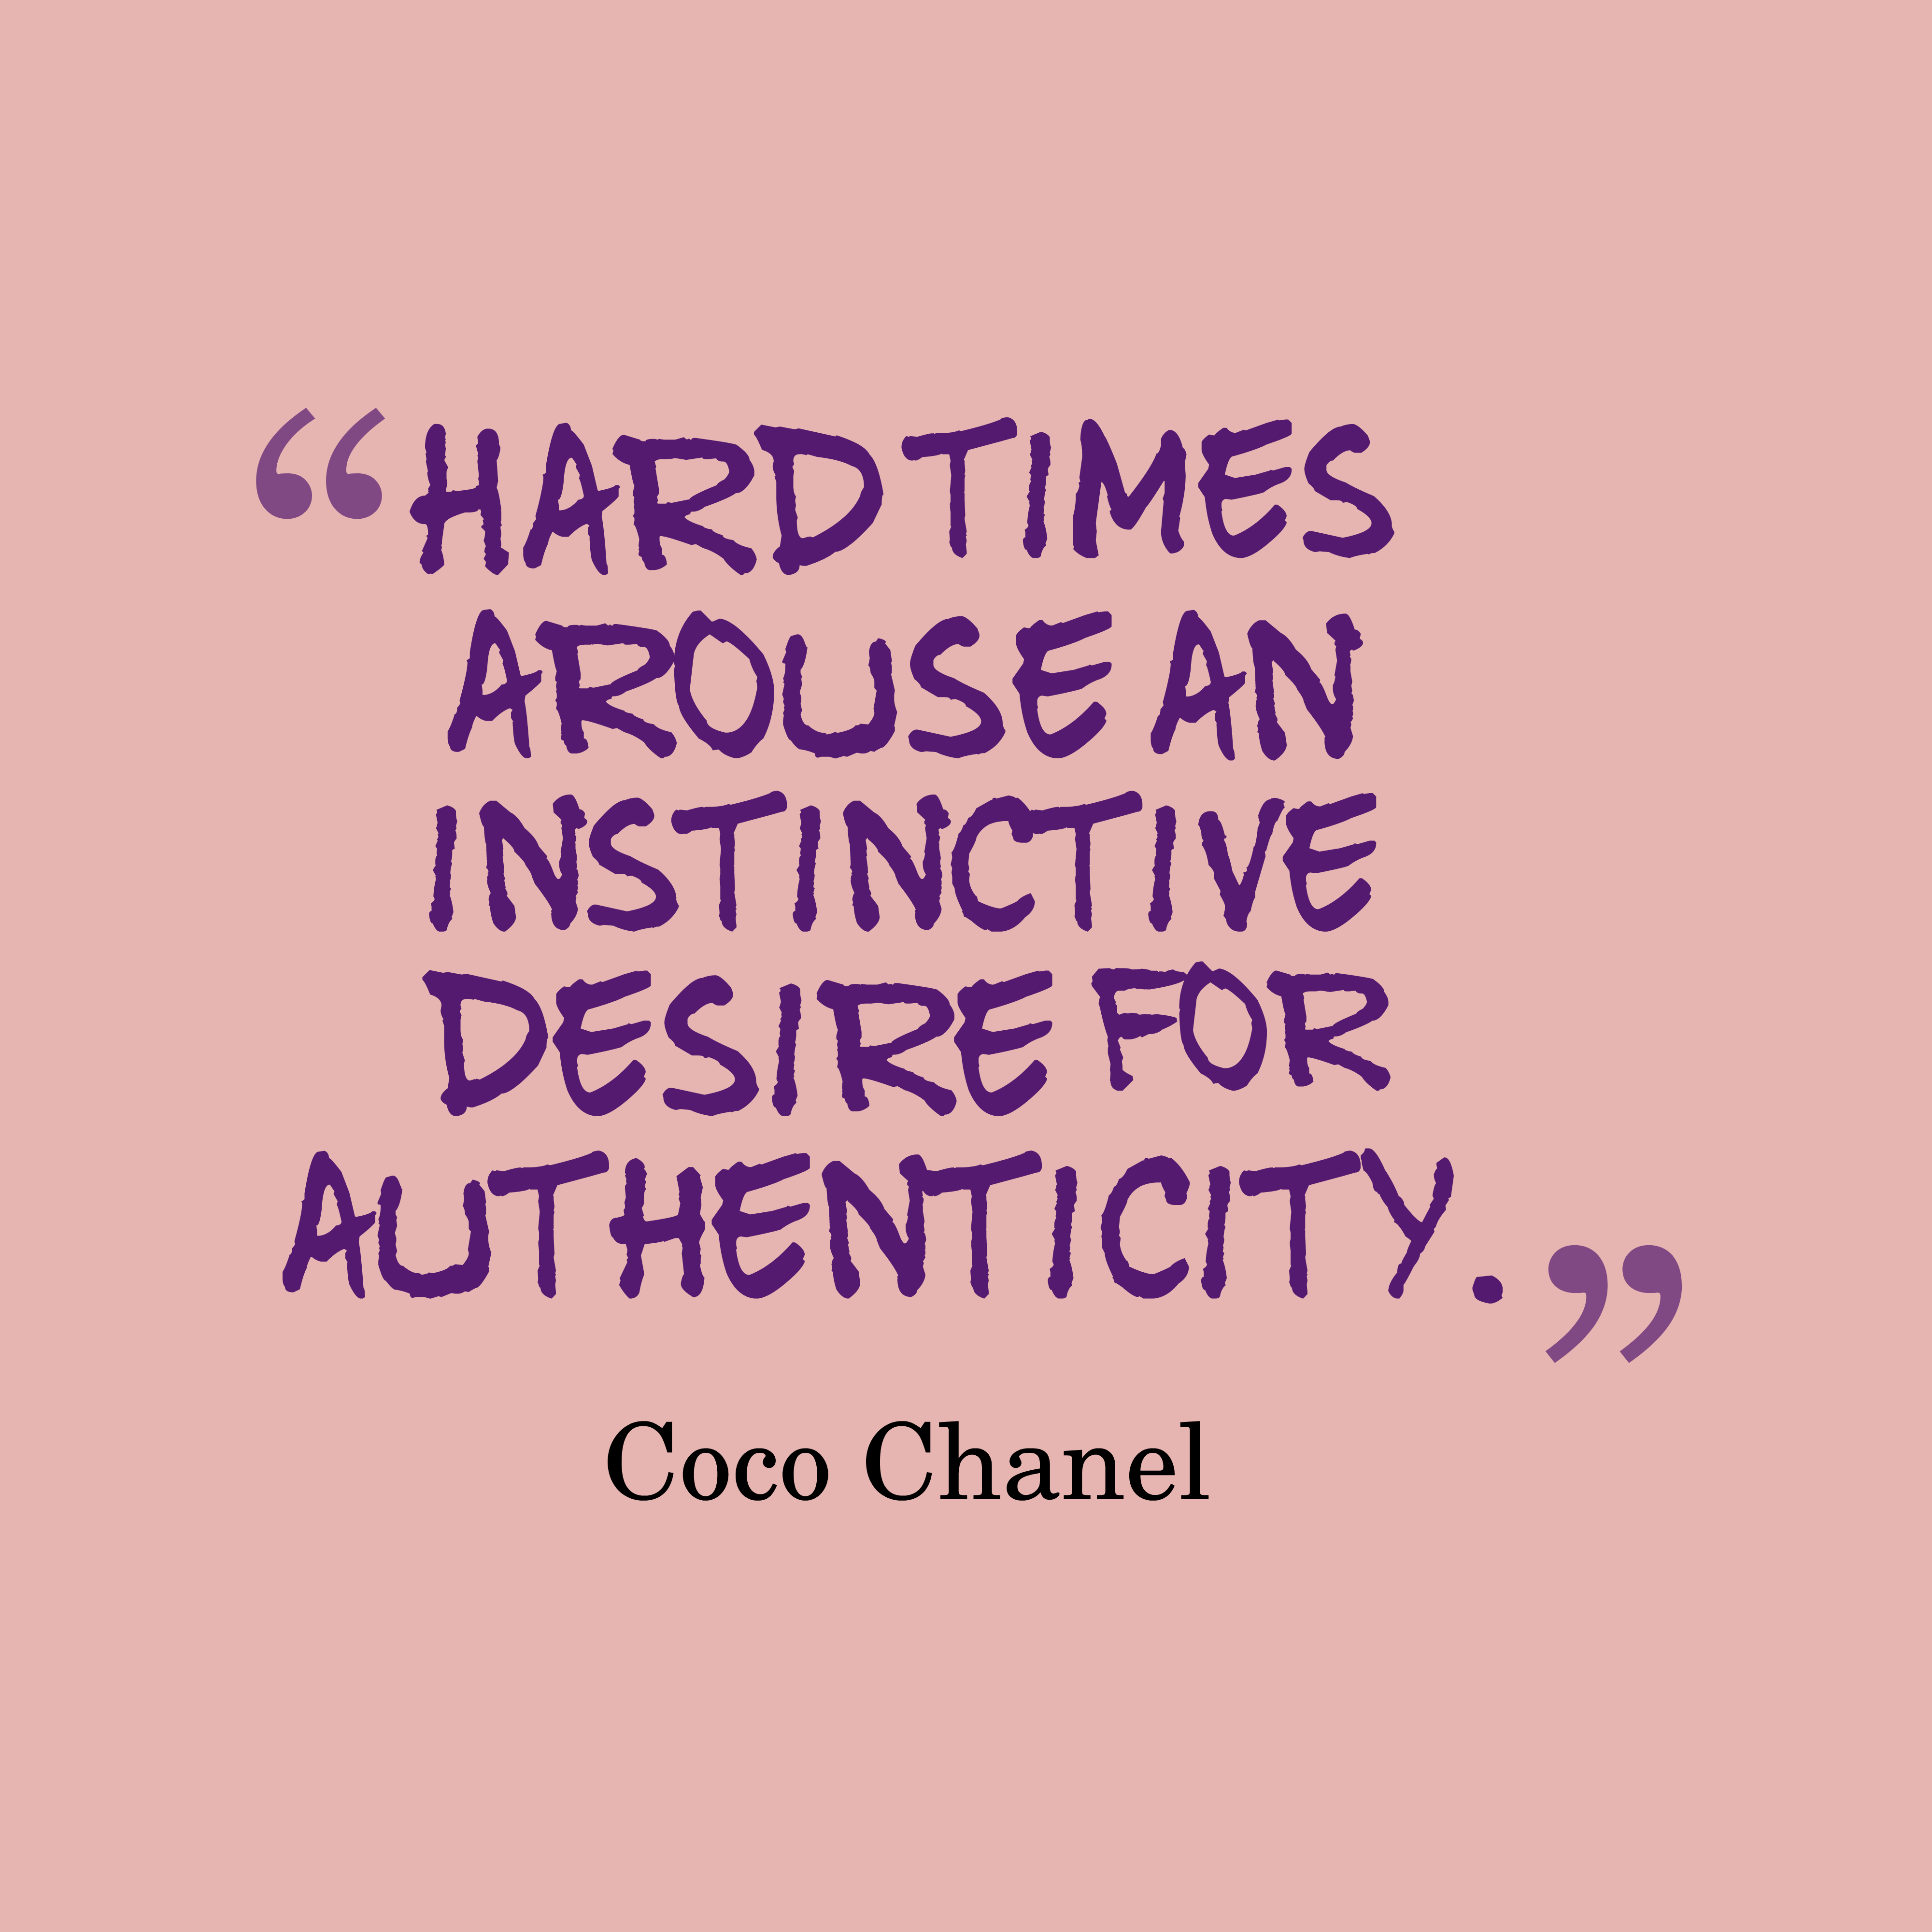 Quote On Picture Maker: Coco Chanel Quotes On Life. QuotesGram